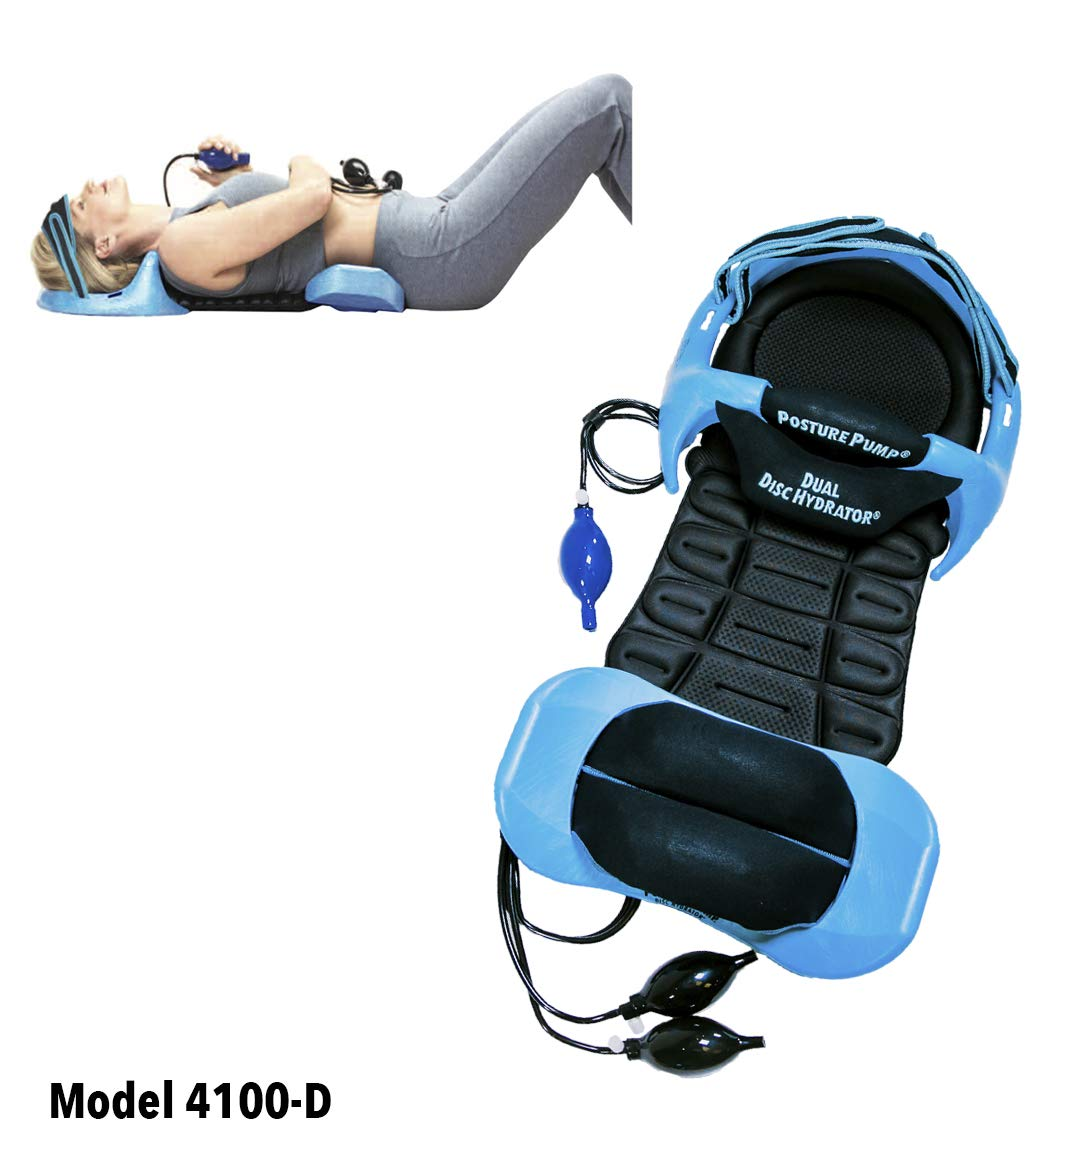 Posture Pump® Dual Deluxe Full Spine (Model 4100-D) by Posture Pump (Image #1)